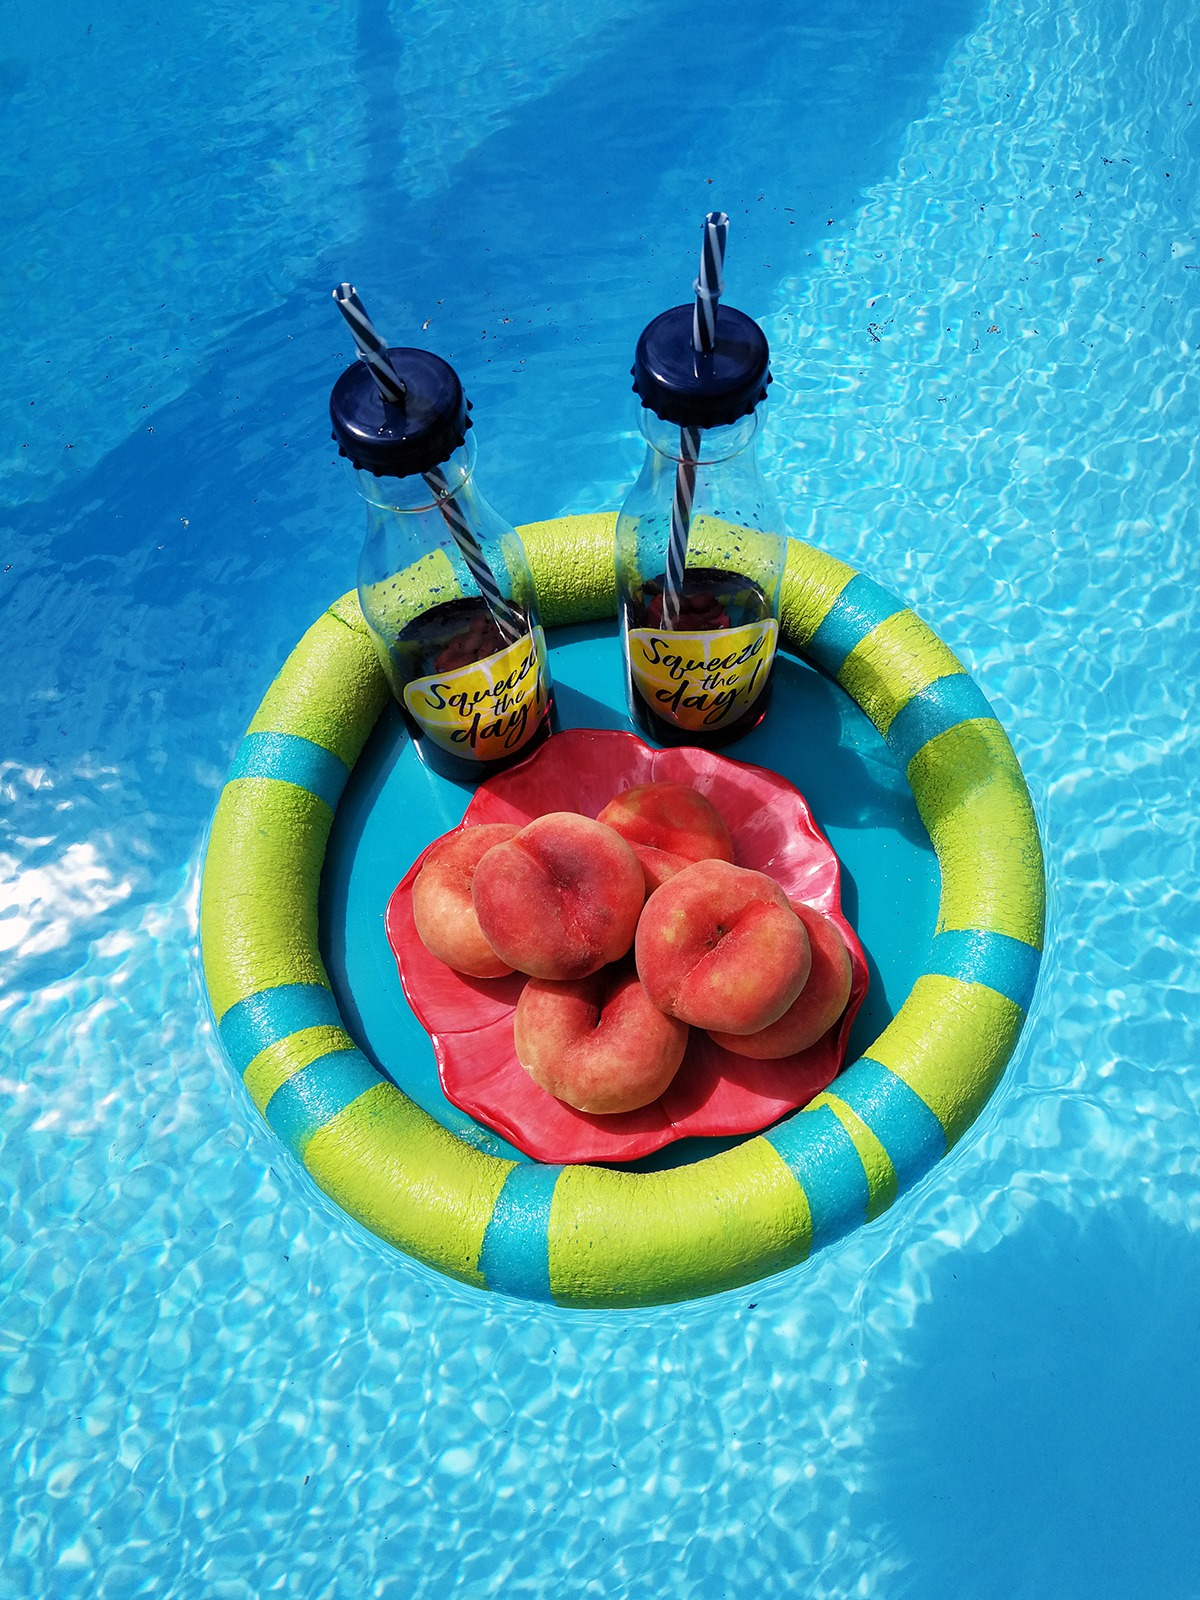 DIY-floating-tray-with-a-pool-noodle-for-summer